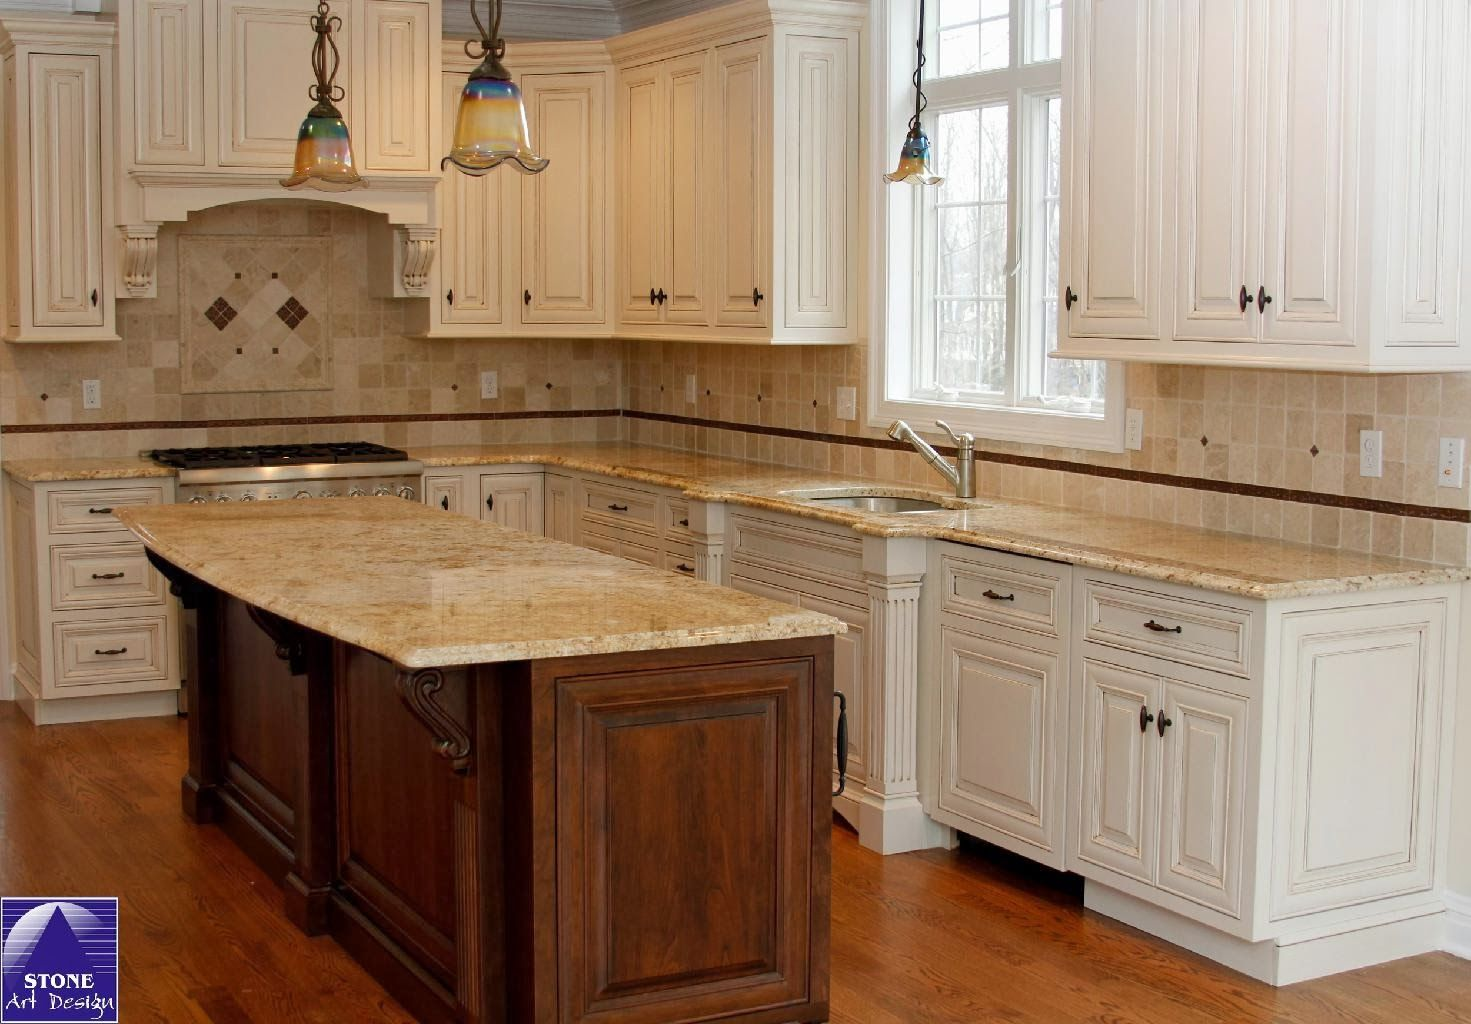 This Is What The Kitchen Would Look Like With White Cabinets